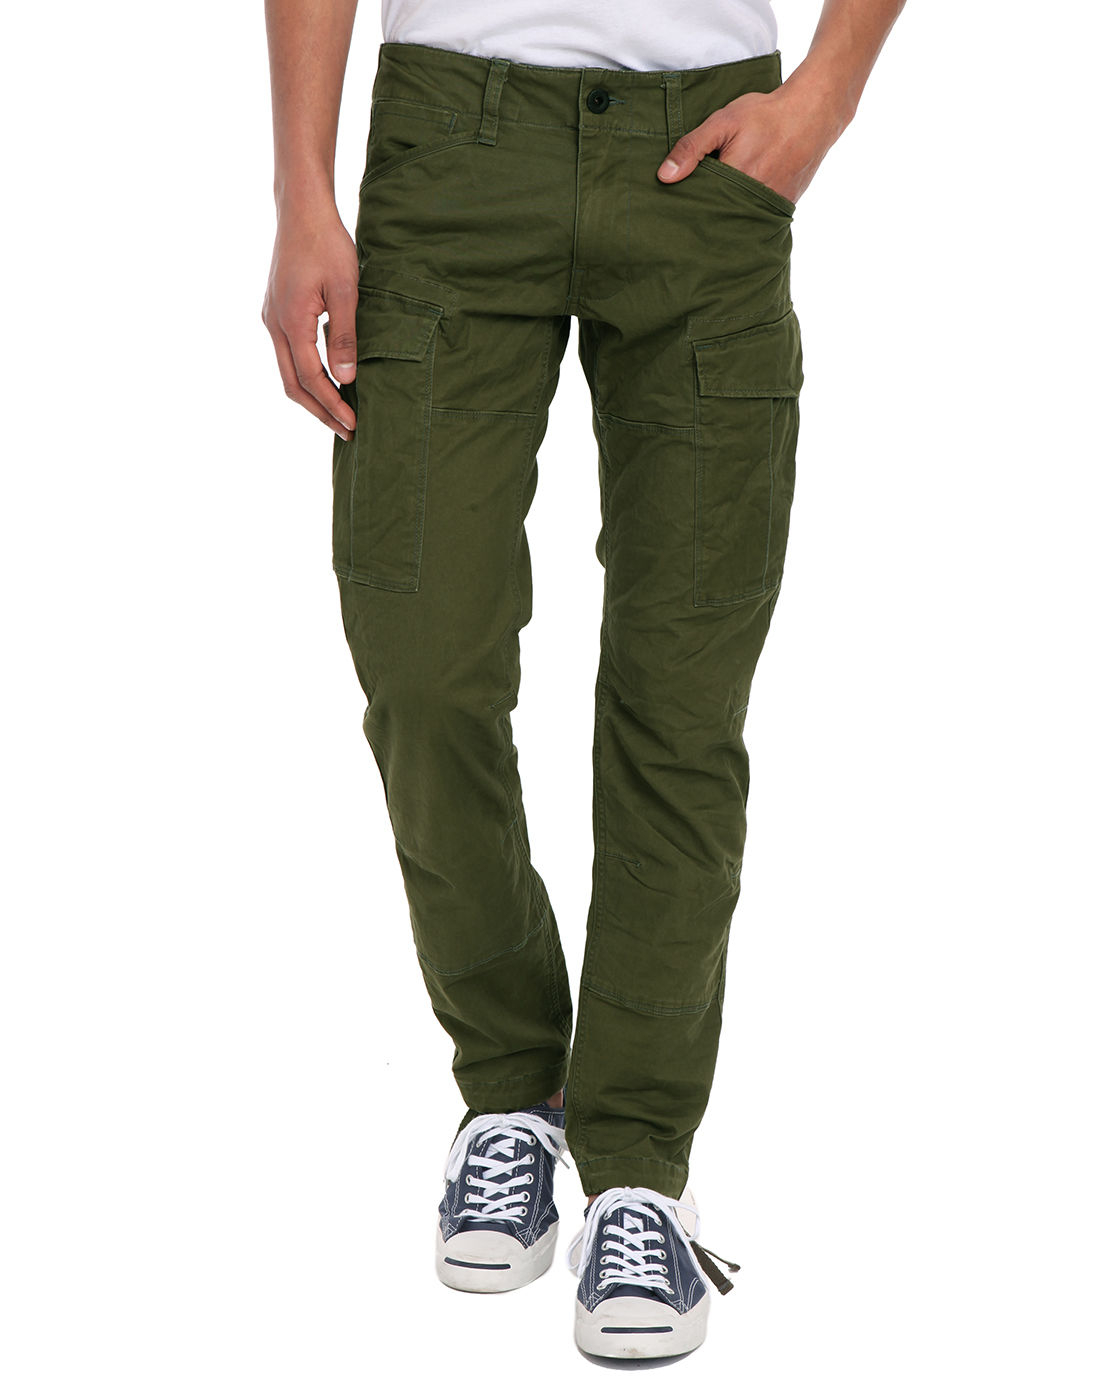 G-star raw Rovic Khaki Slim-fit Cargo Trousers in Green for Men | Lyst